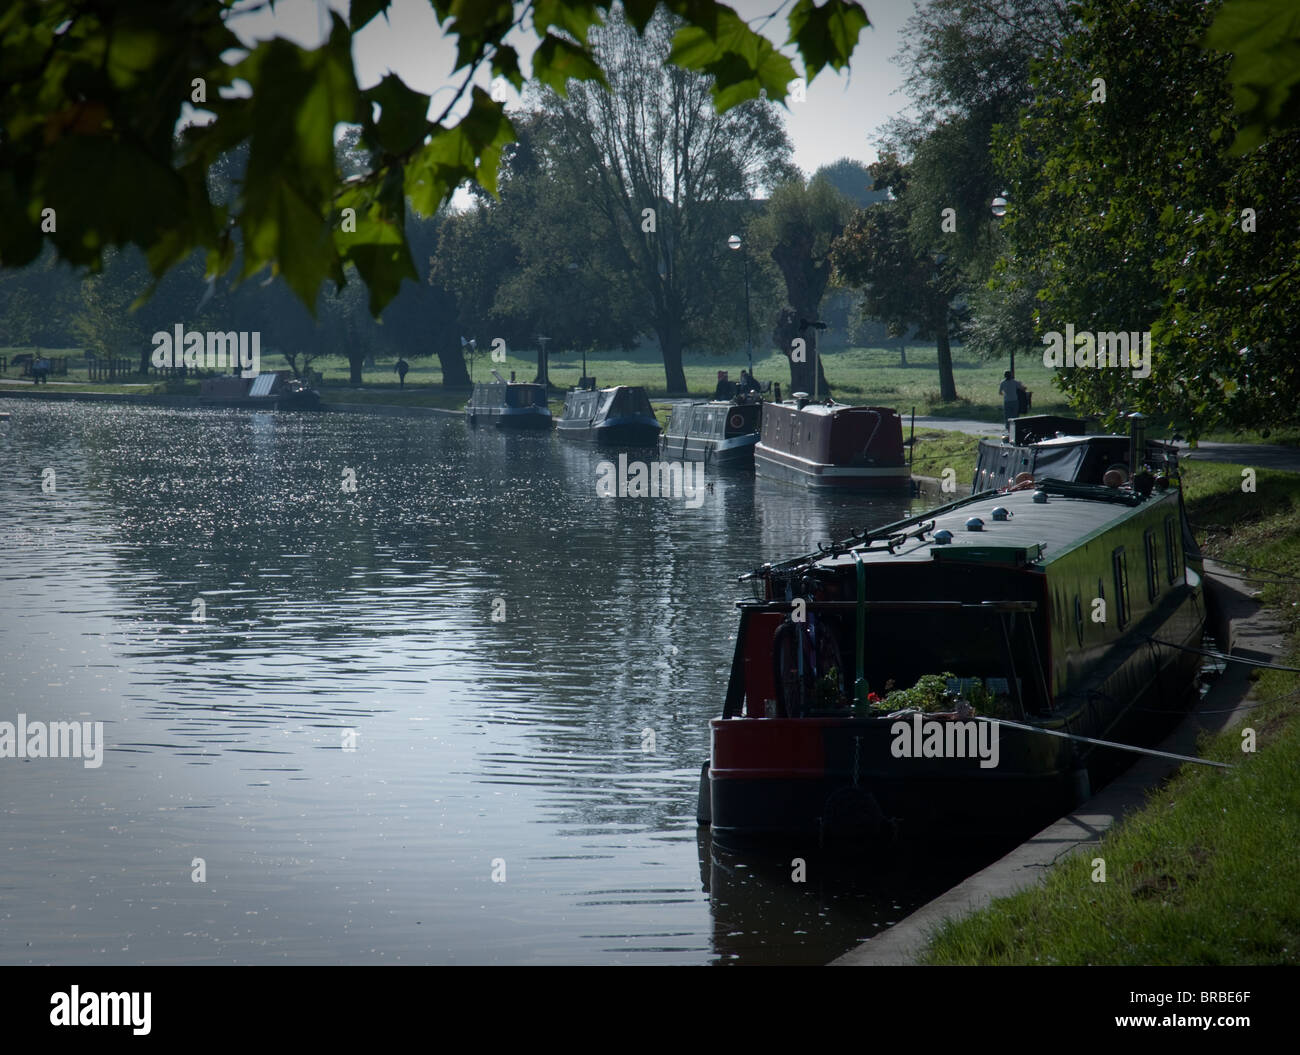 Moored longboats along the towpath along the River Cam in Cambridge, with moored boats, in early morning autumn - Stock Image